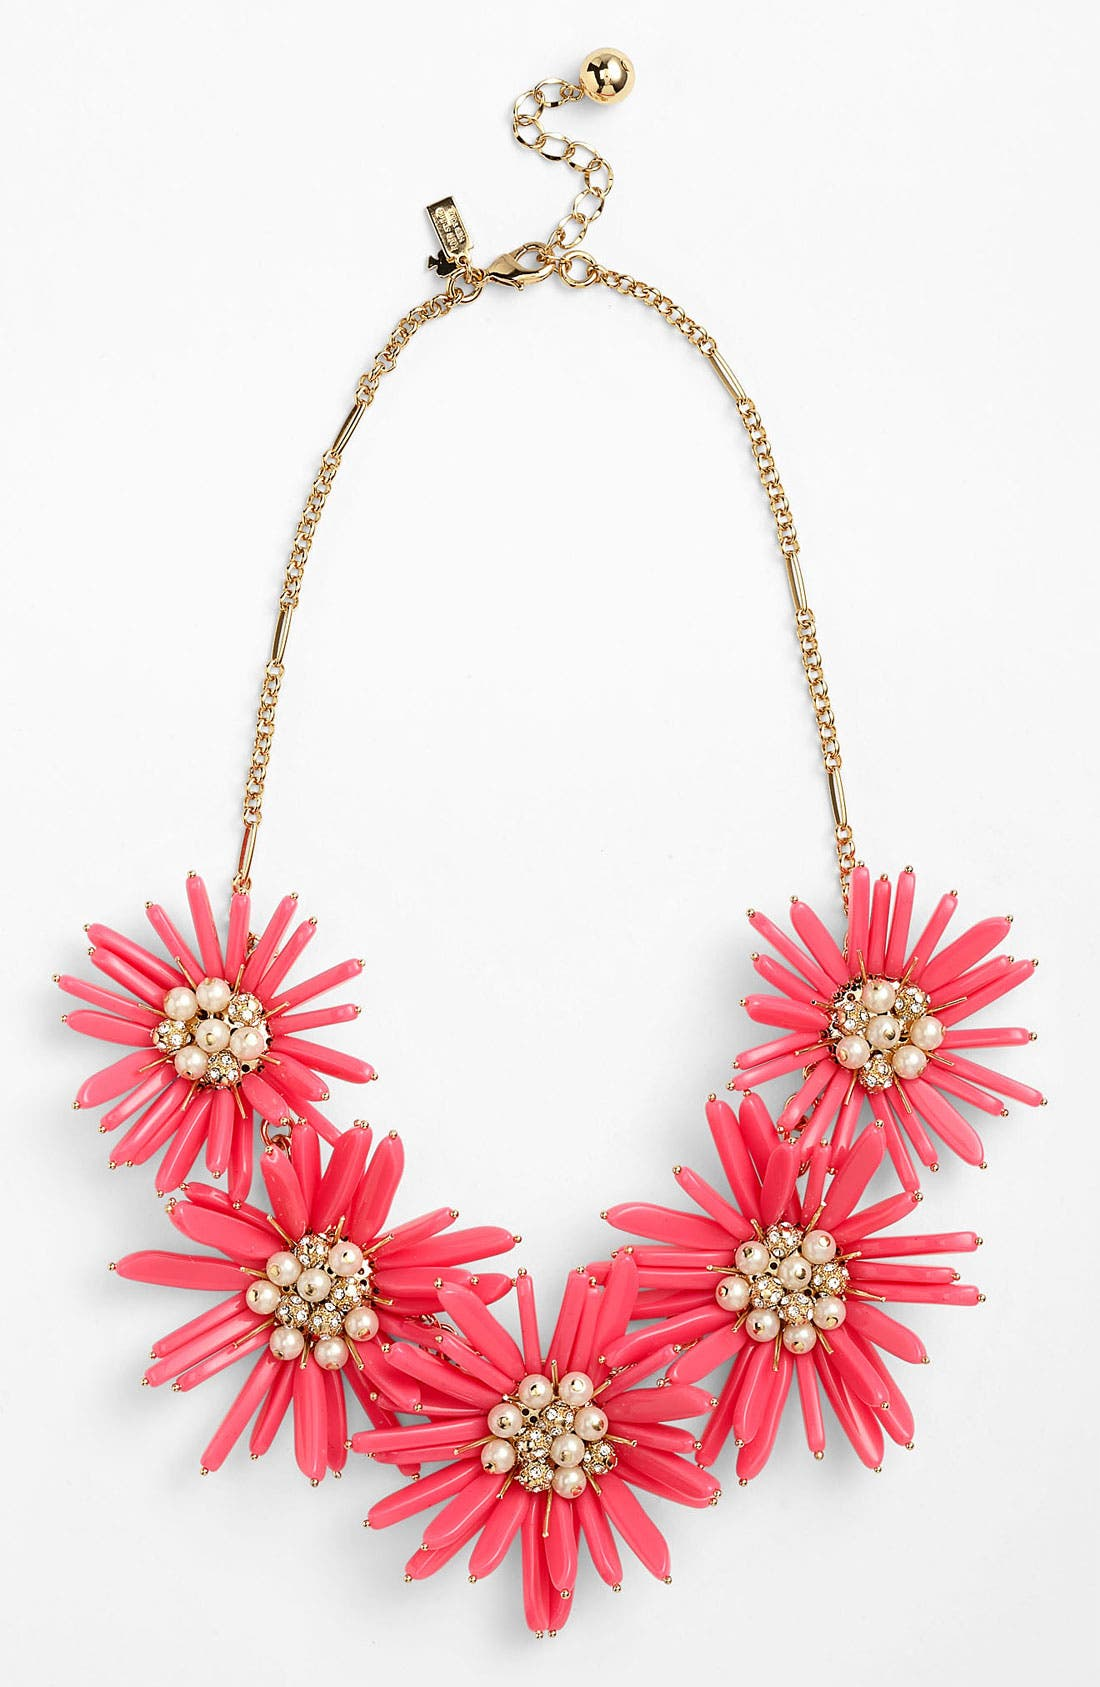 Main Image - kate spade new york 'field day' bib necklace